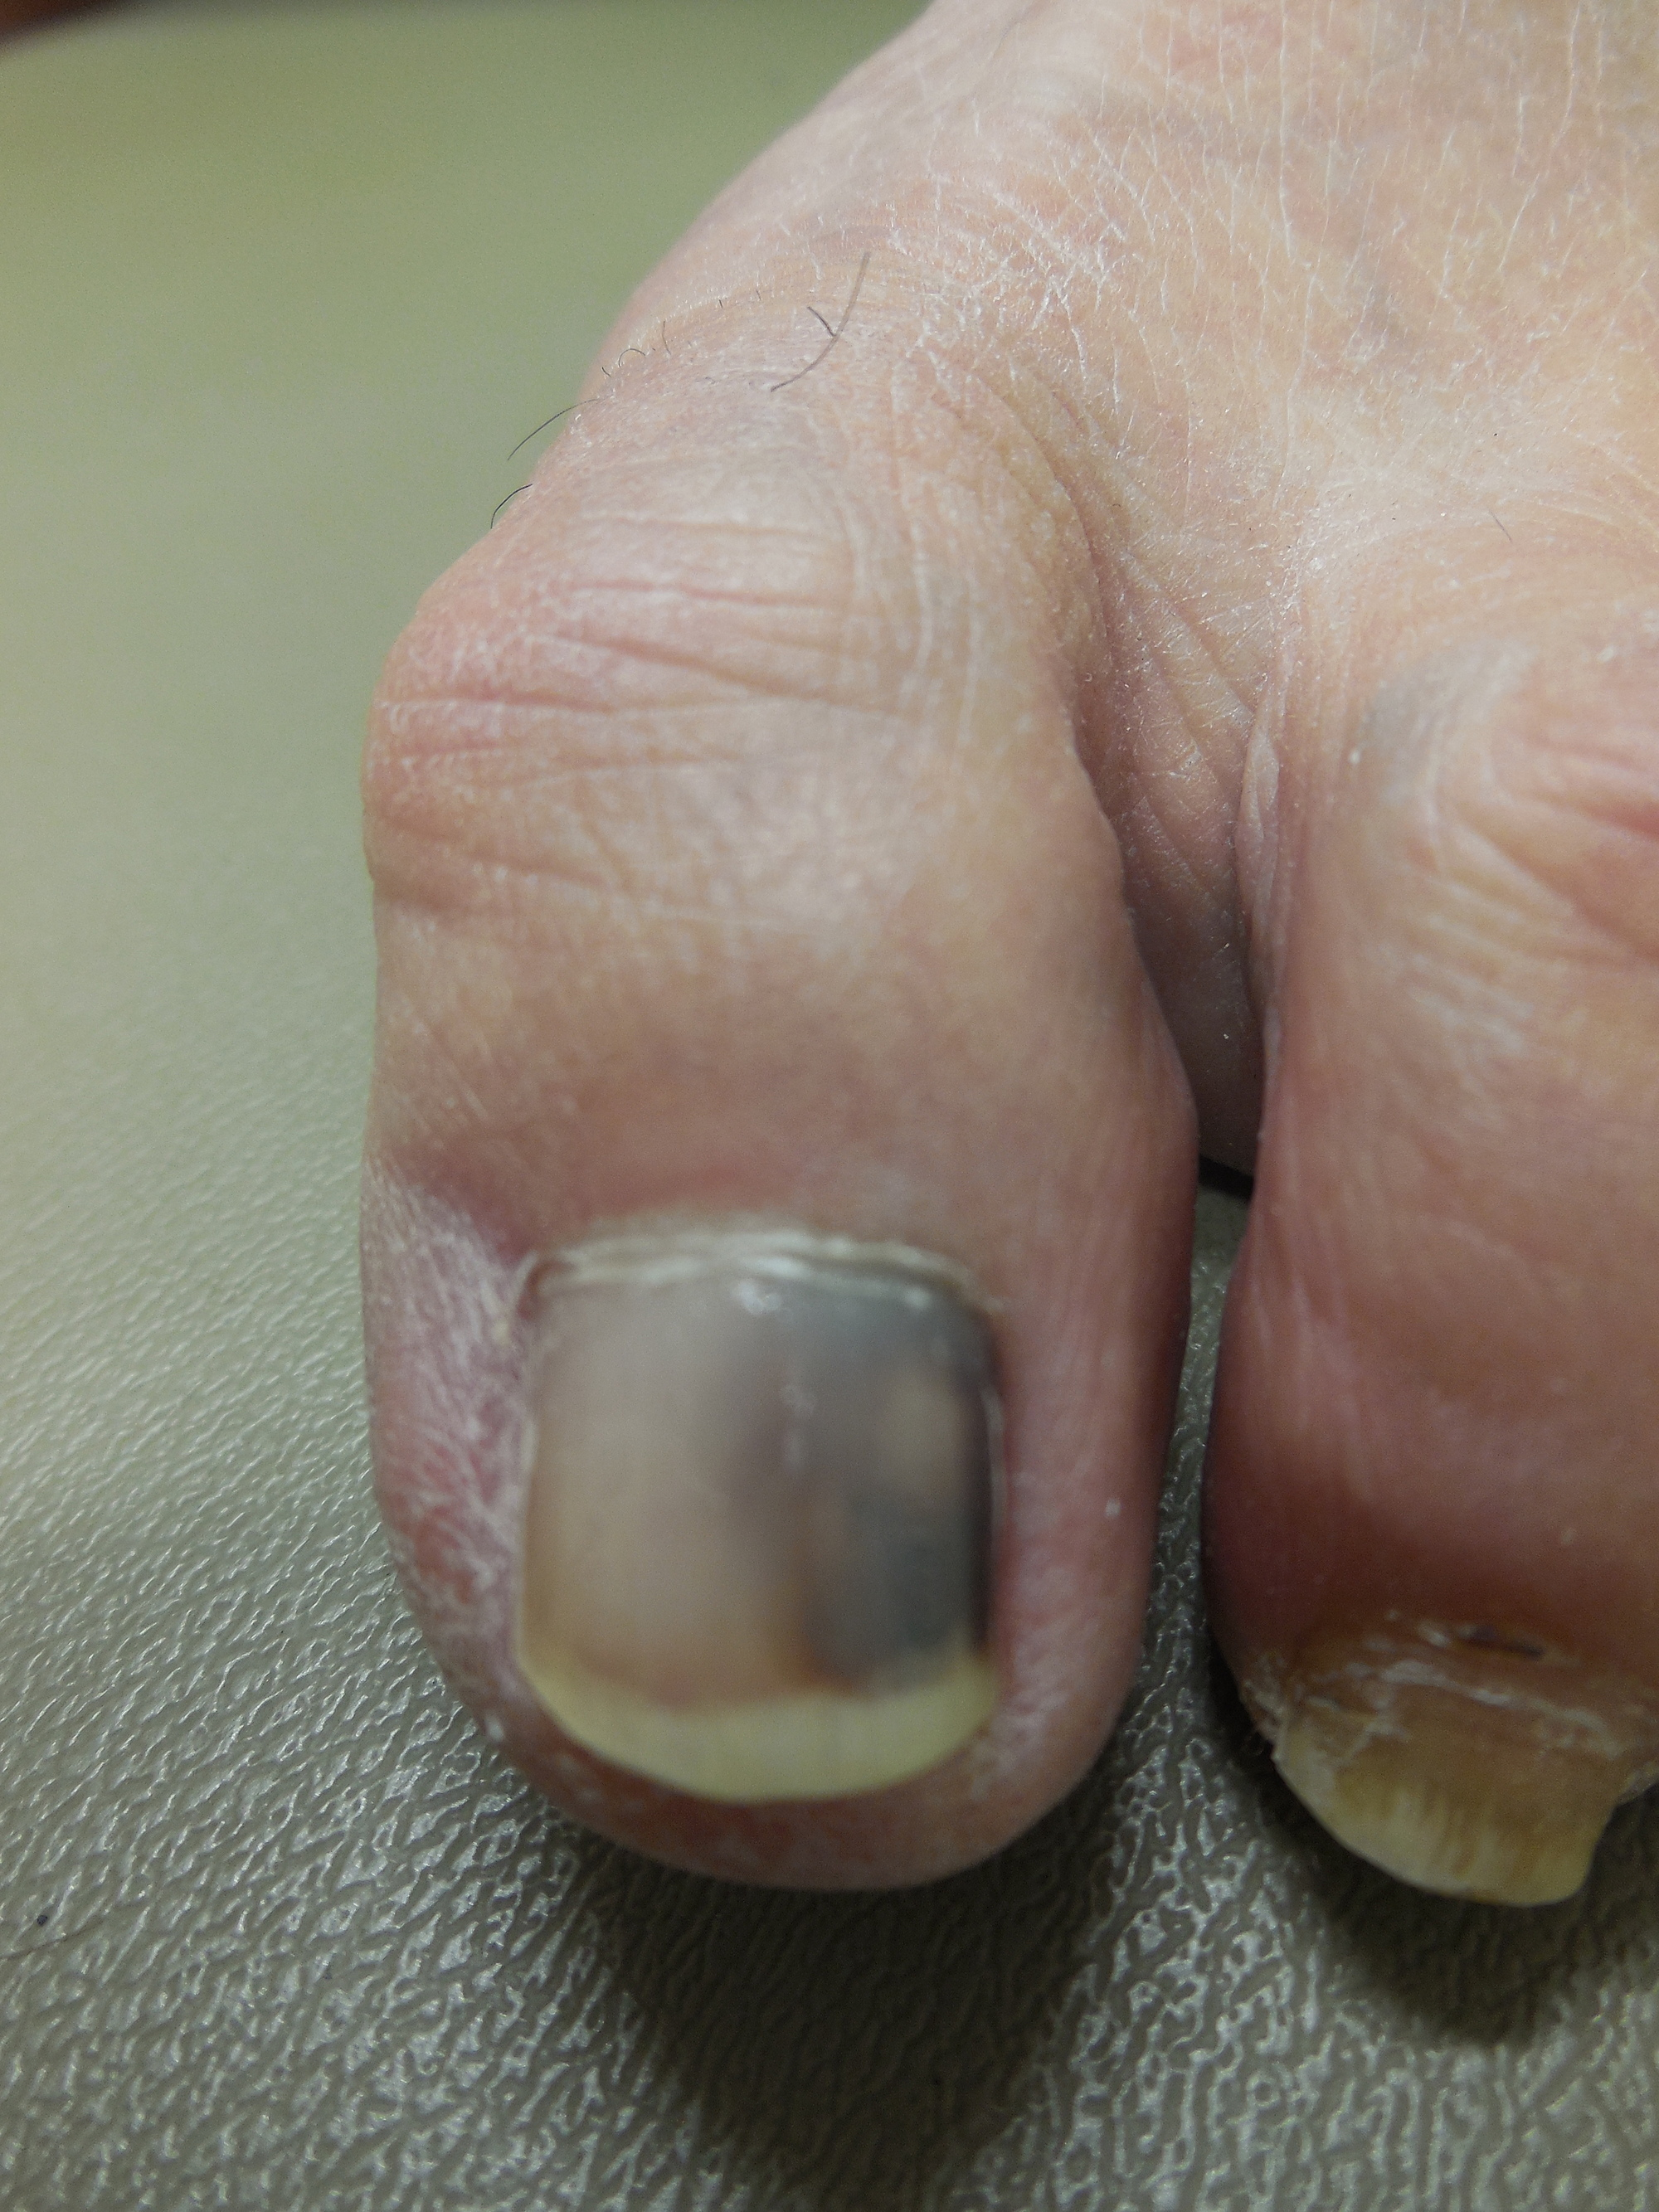 Cureus | Non-Melanoma-Associated Dyschromia of the Proximal Nail Fold